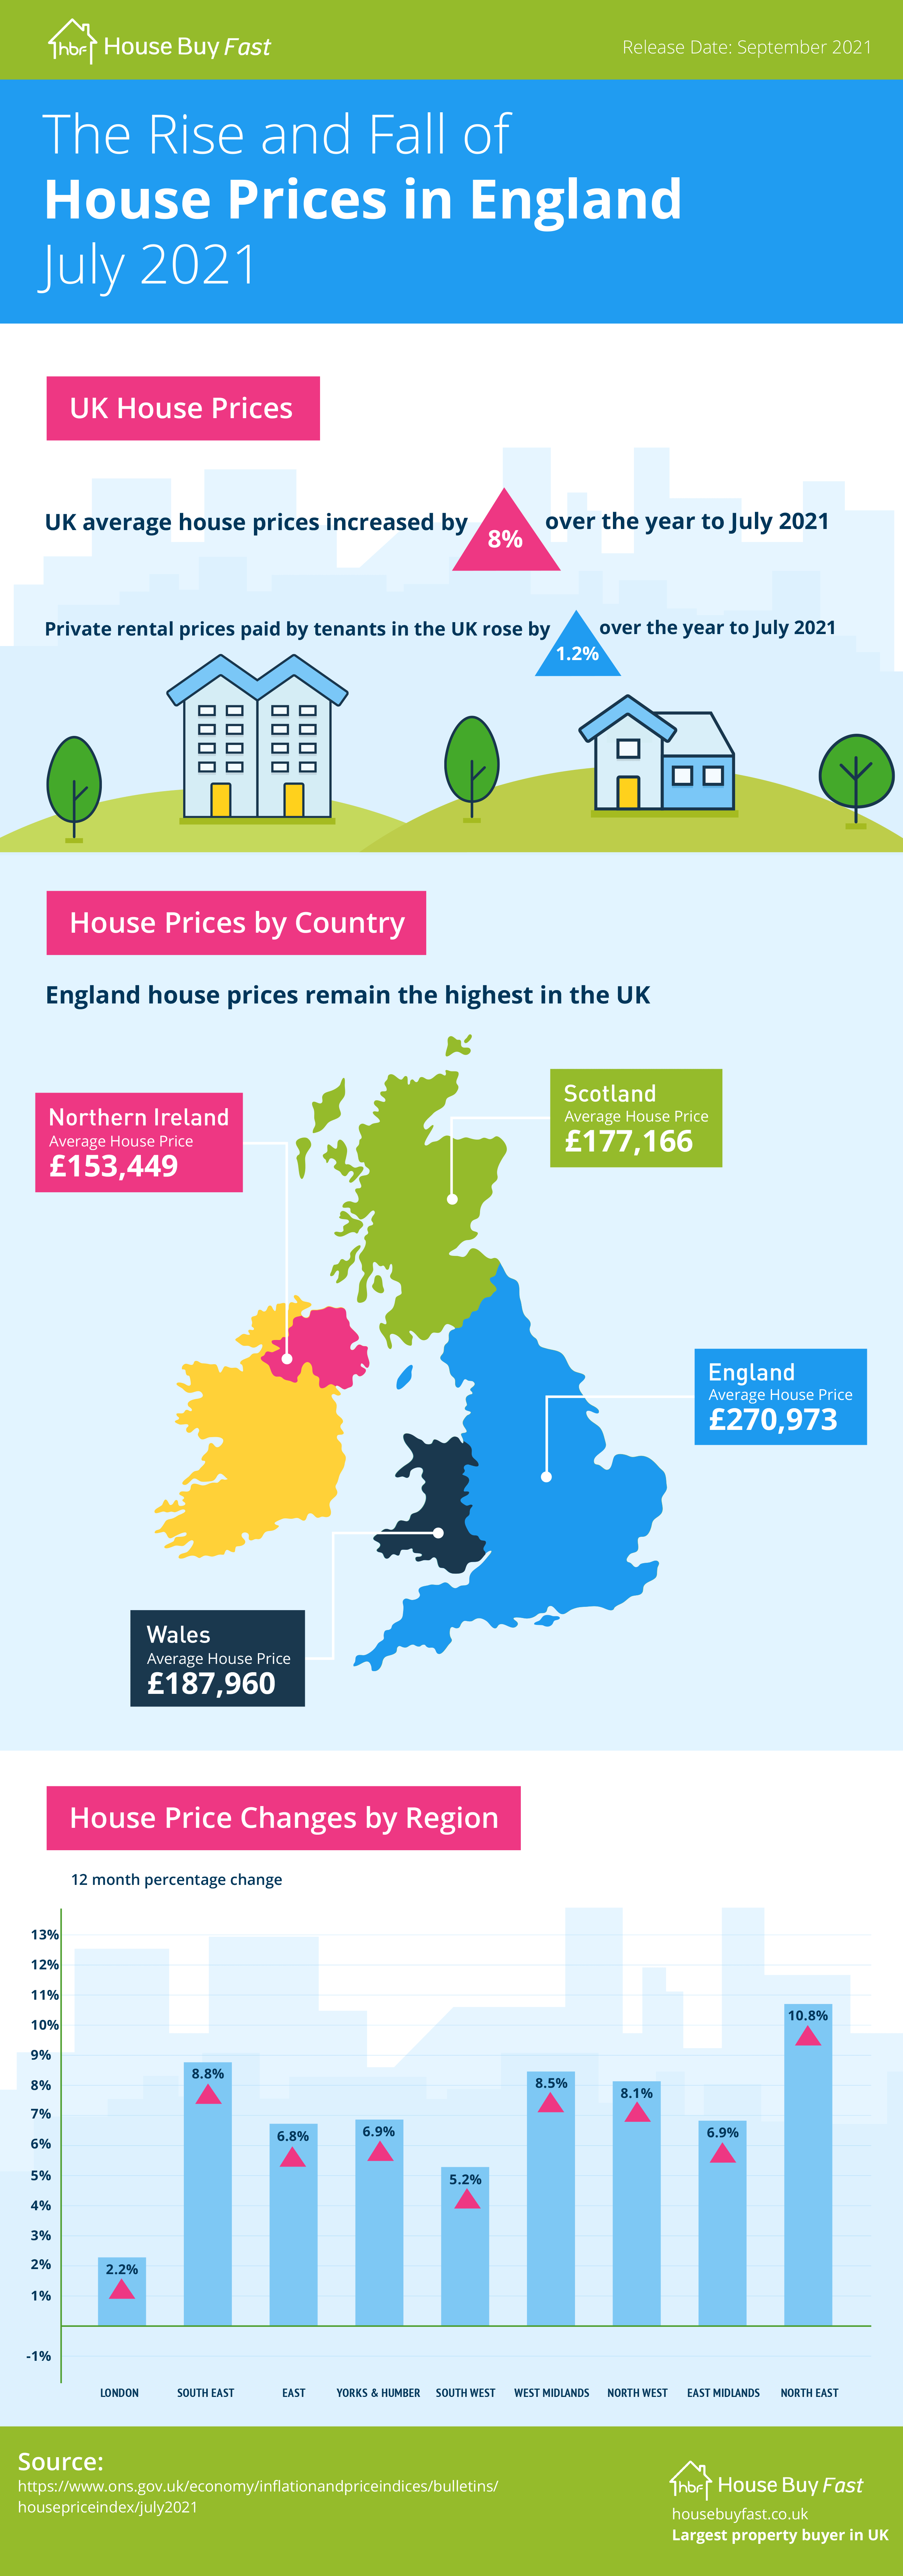 Infographic of the rise and fall of house prices in England